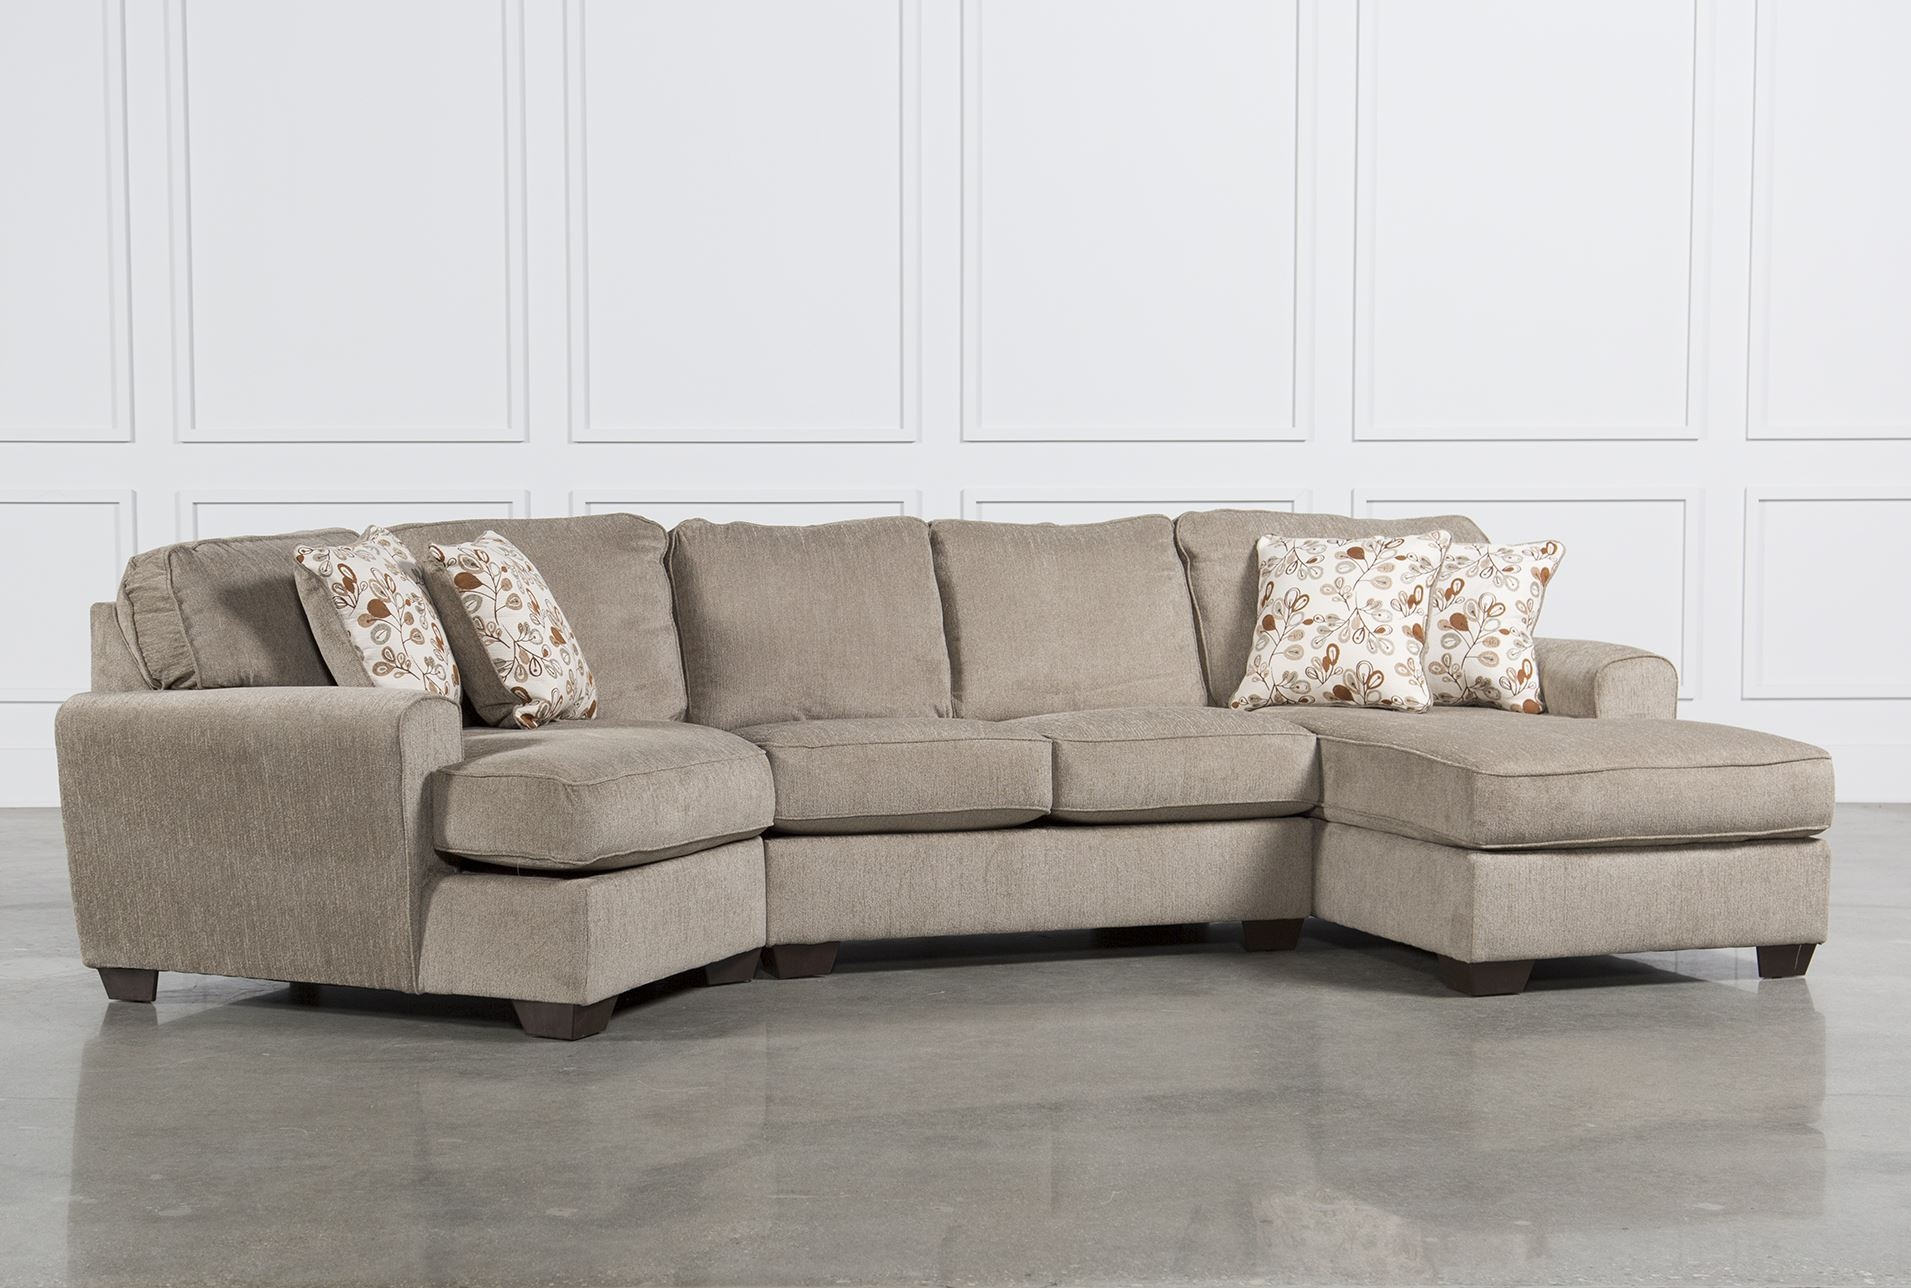 Loveseat Sectional Small Room